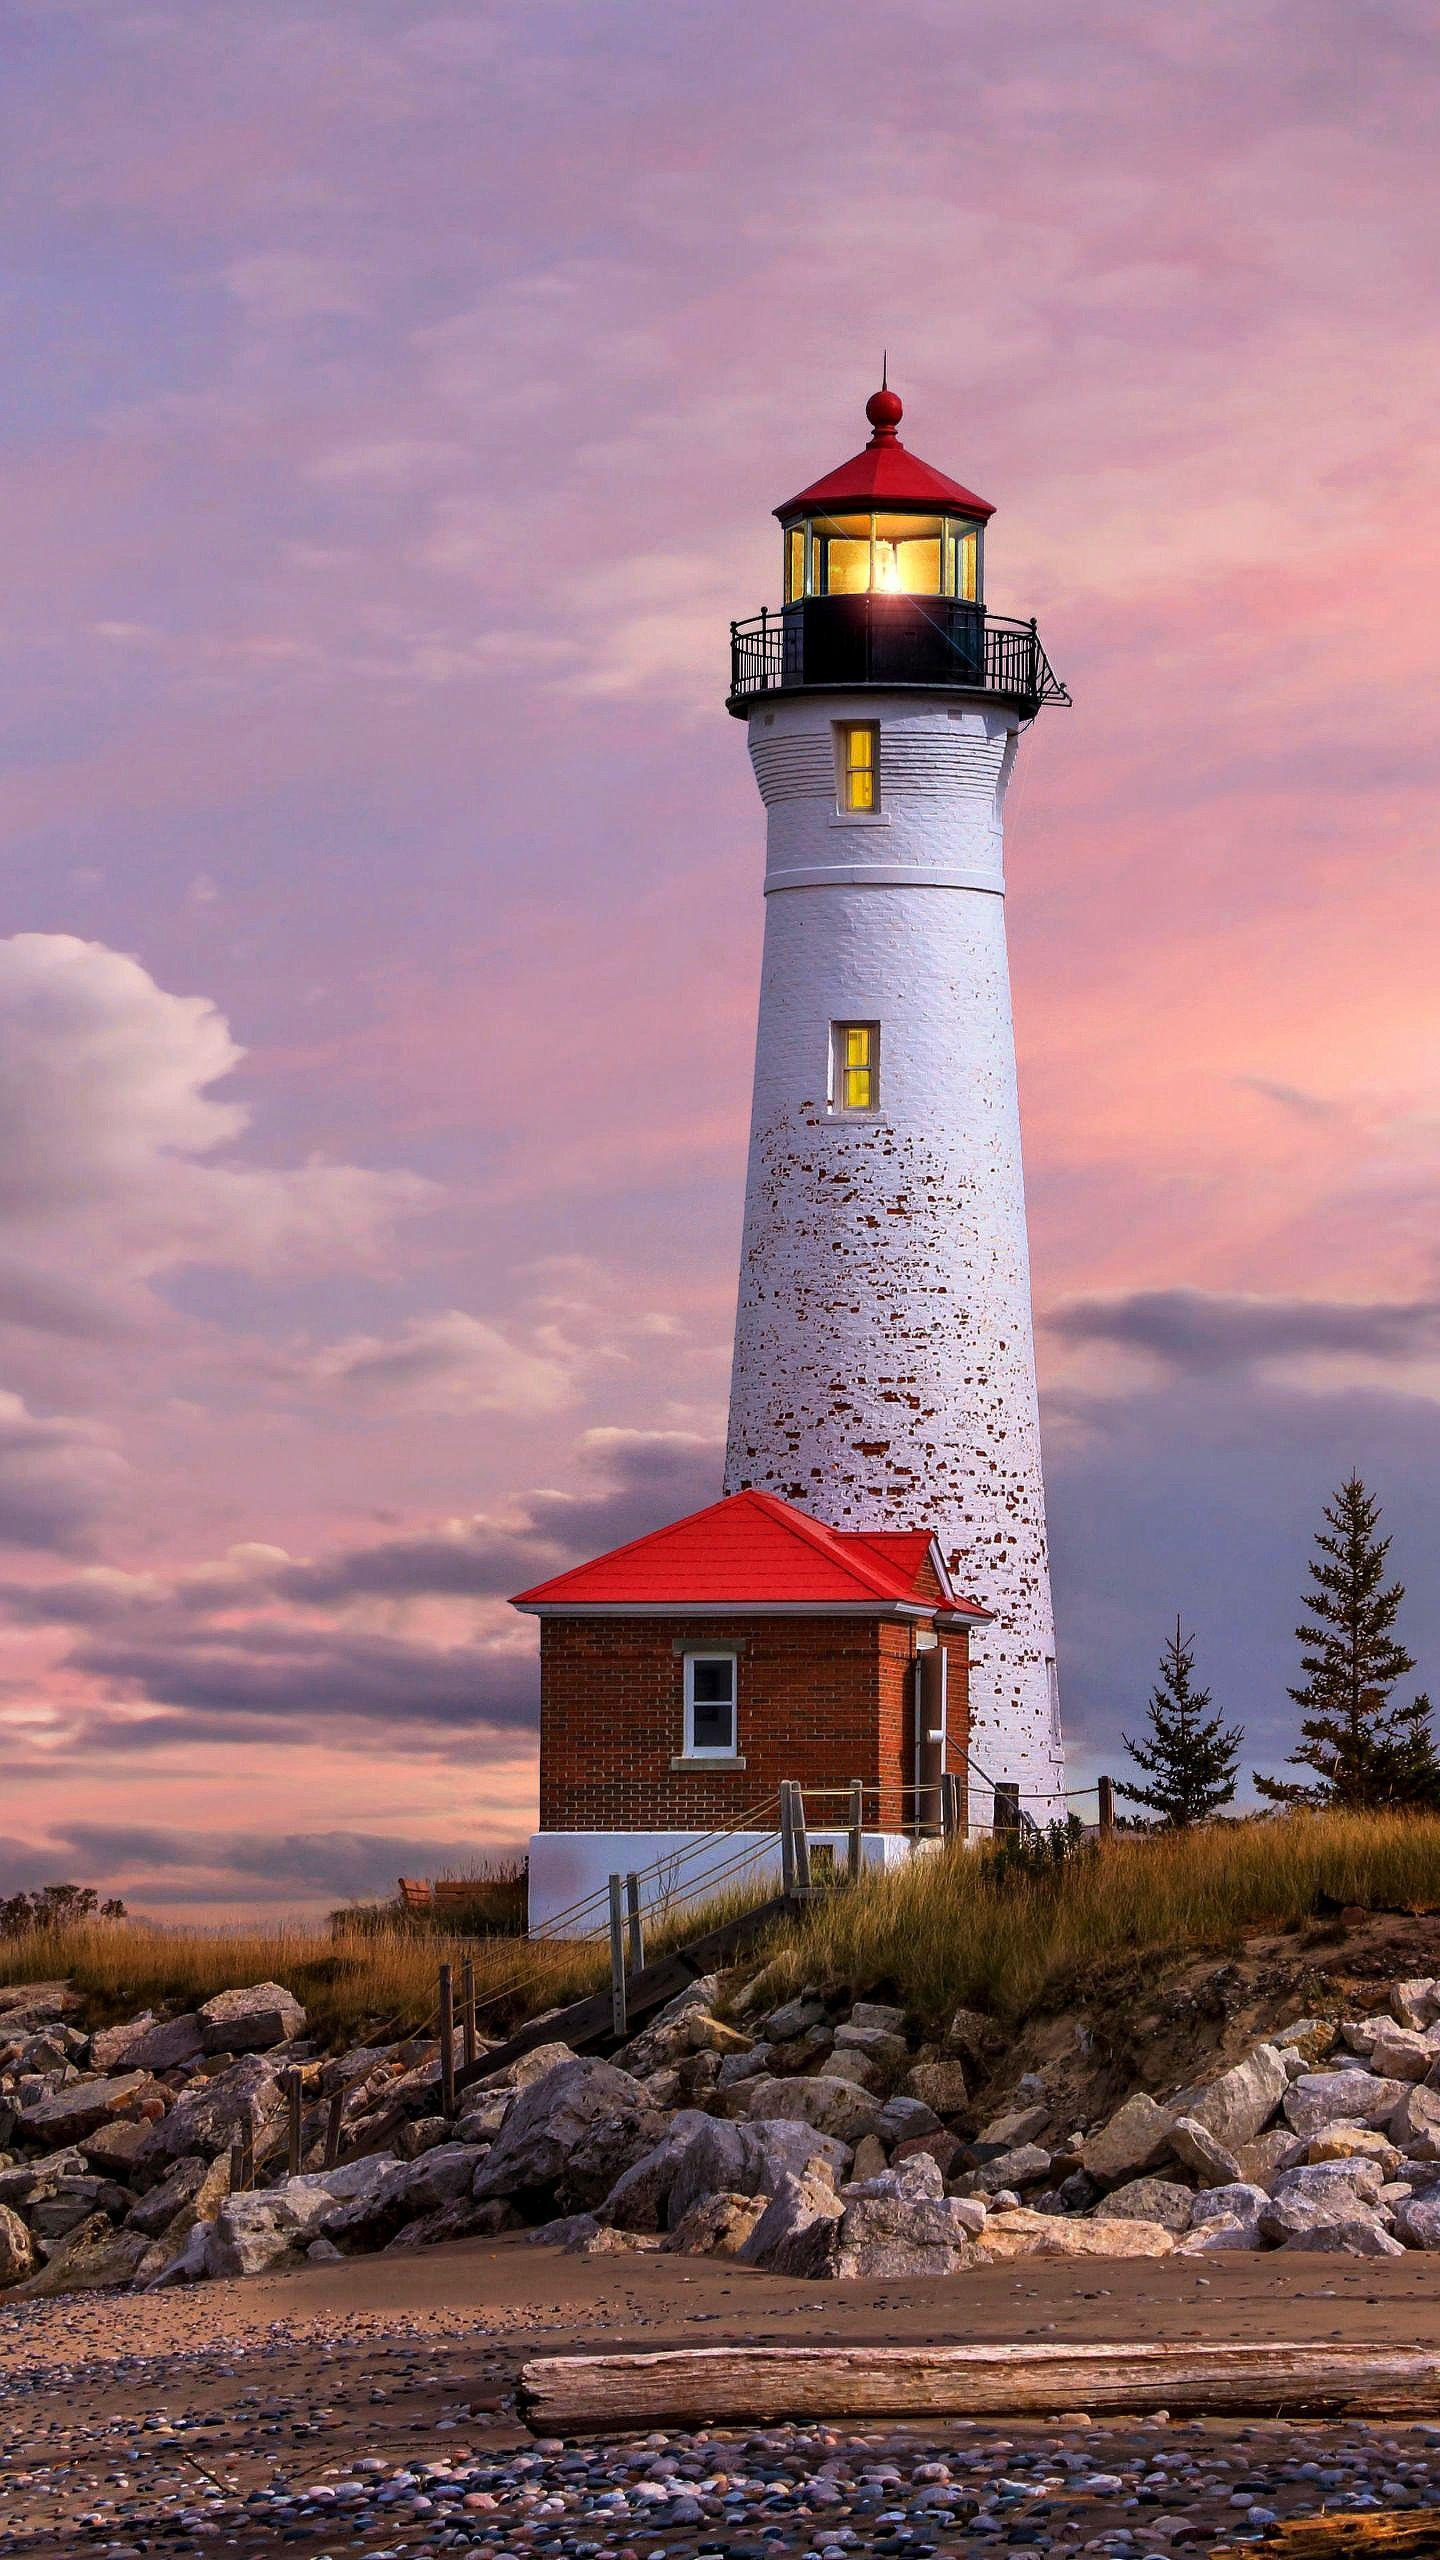 The lighthouse in Michigan, USA, is famous for its Lighthouse in Michigan. Many lighthouses are scattered on the 3,200-mile coastline and become a landscape.